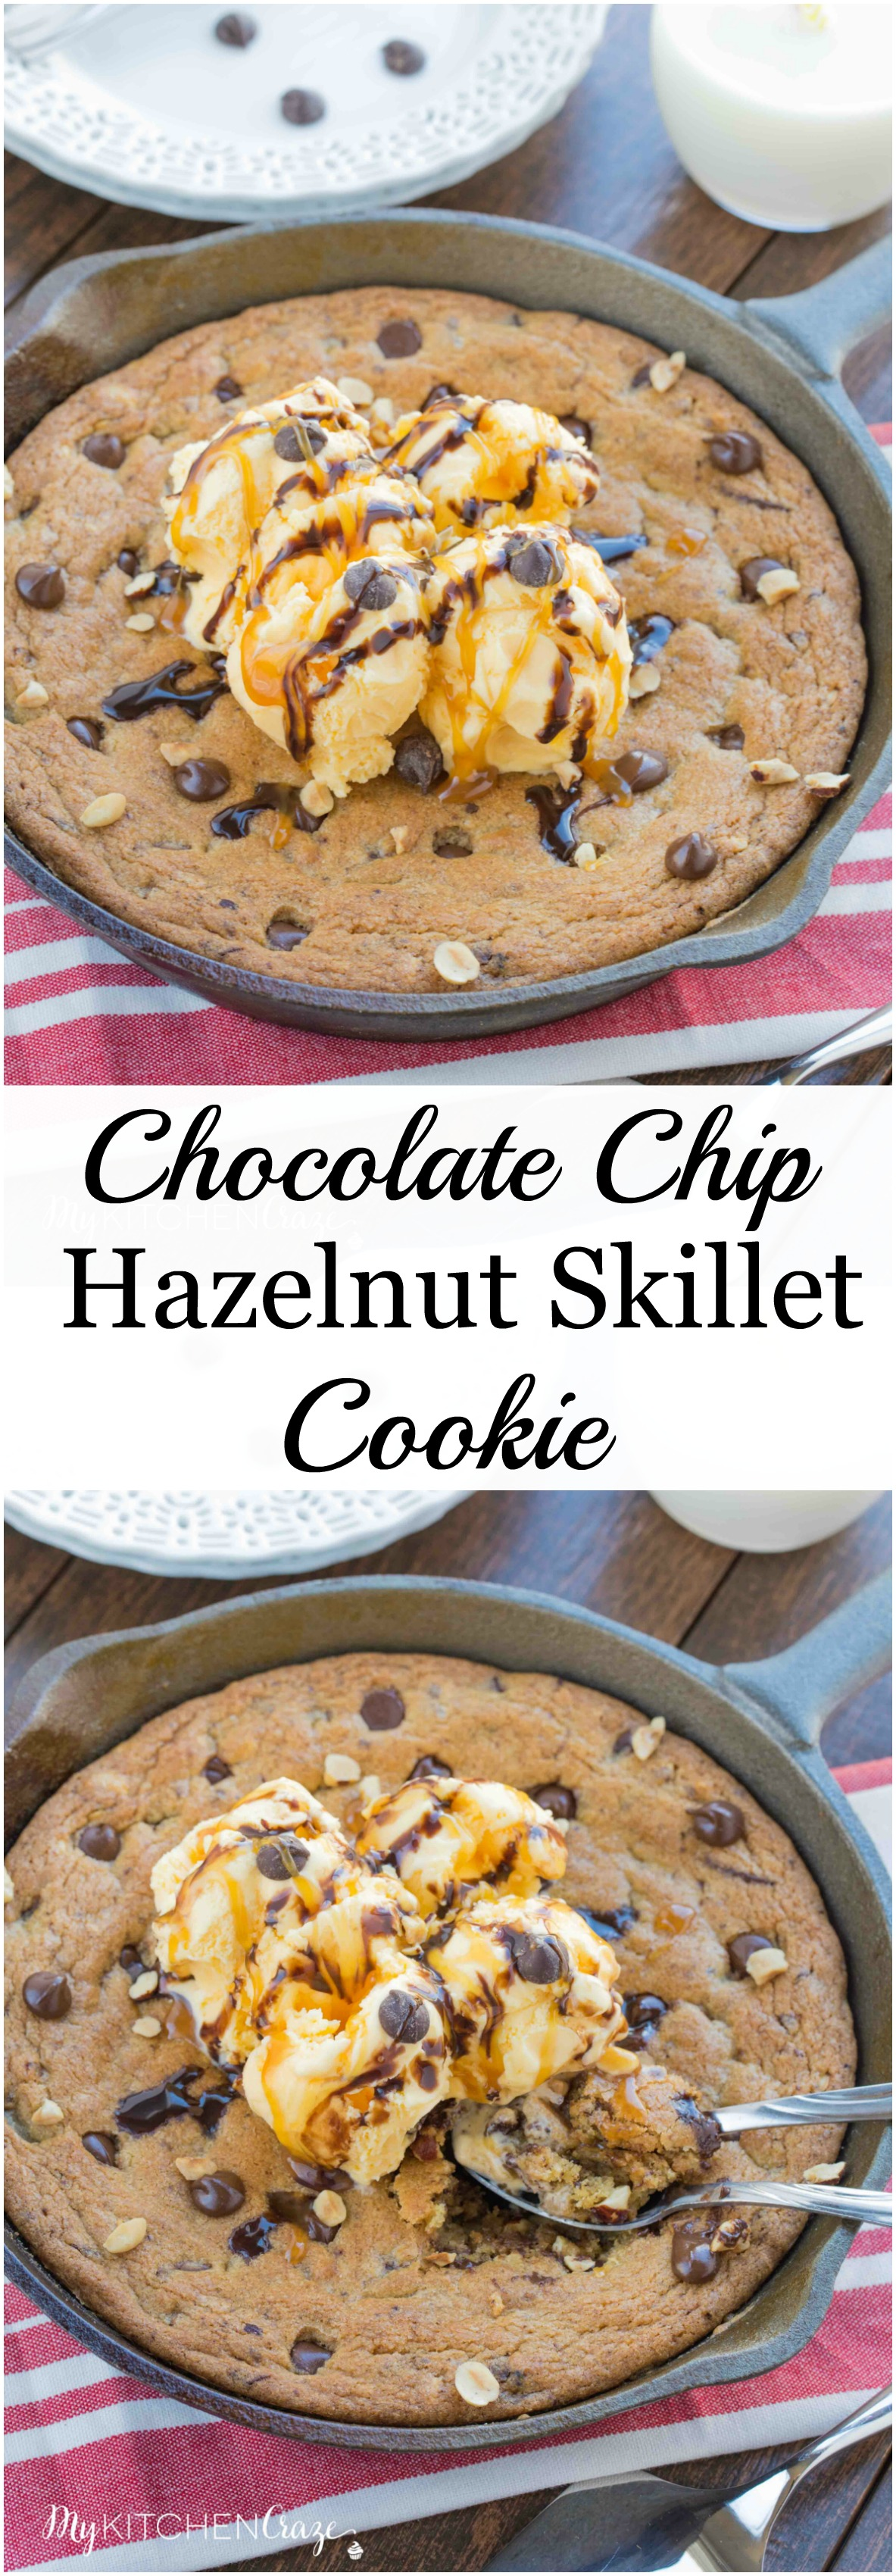 Chocolate Chip Hazelnut Skillet Cookie ~ mykitchencraze.com